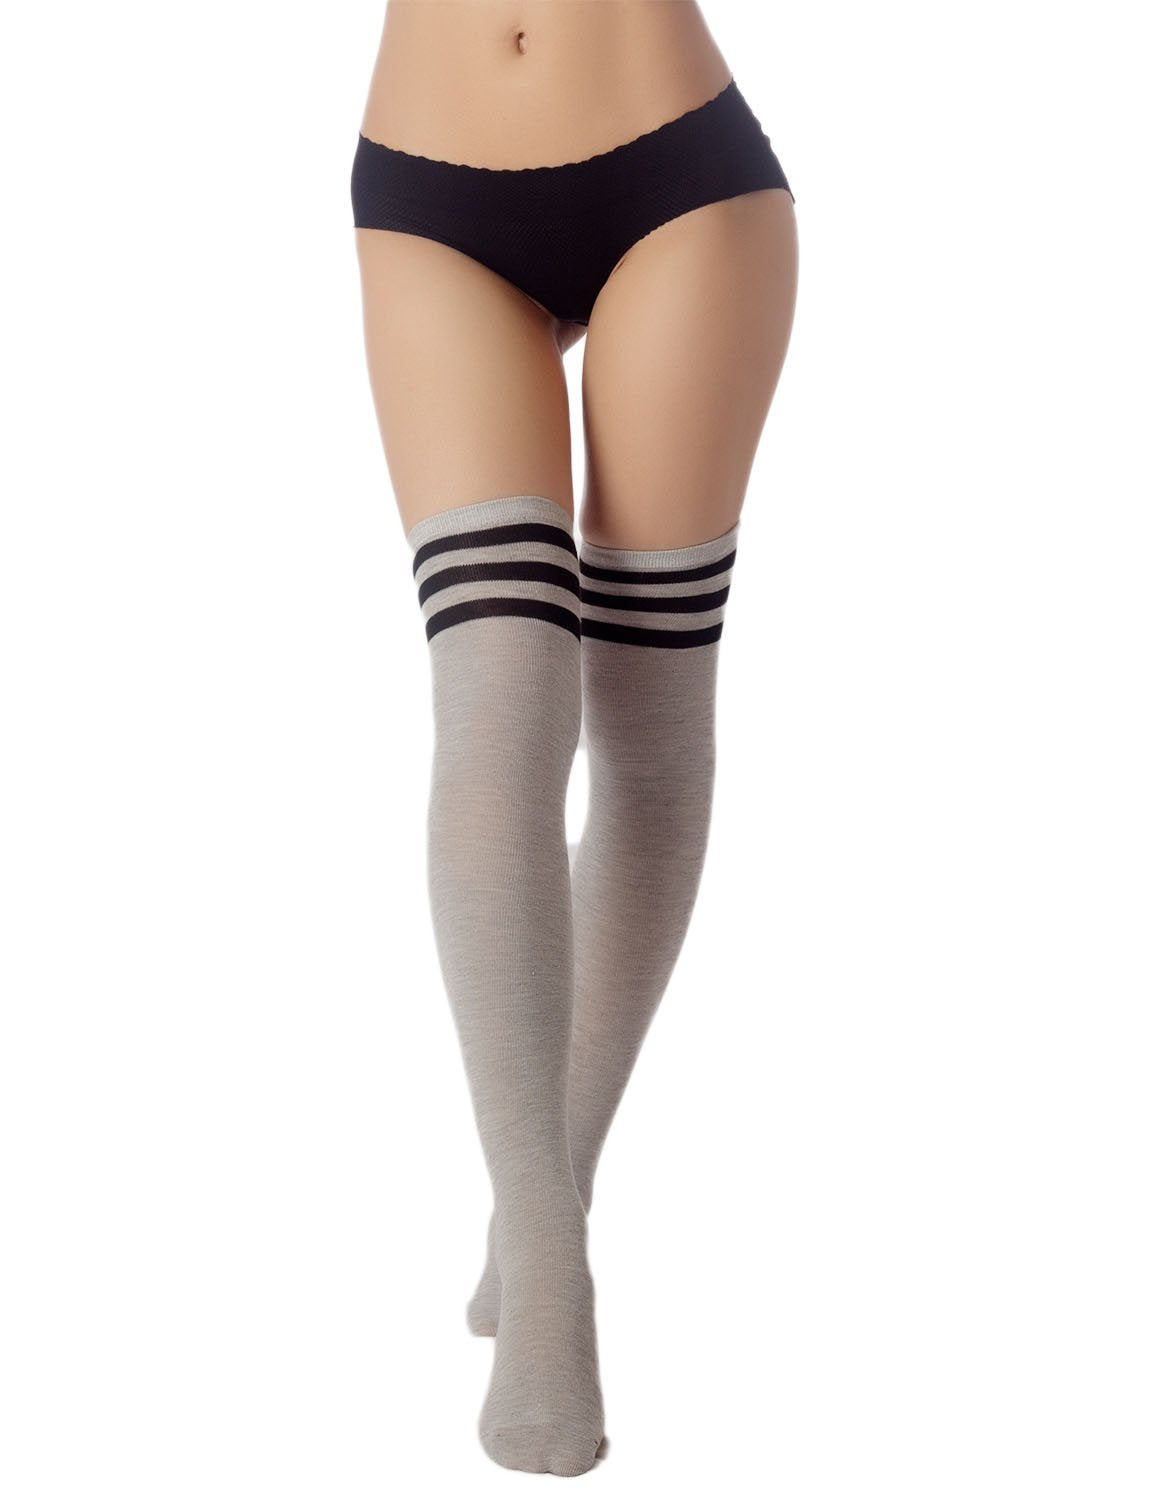 Women's Navy Stripes Sports Football Style Cute Hold-Up Thigh High Socks, Size: One Size, Light Cool